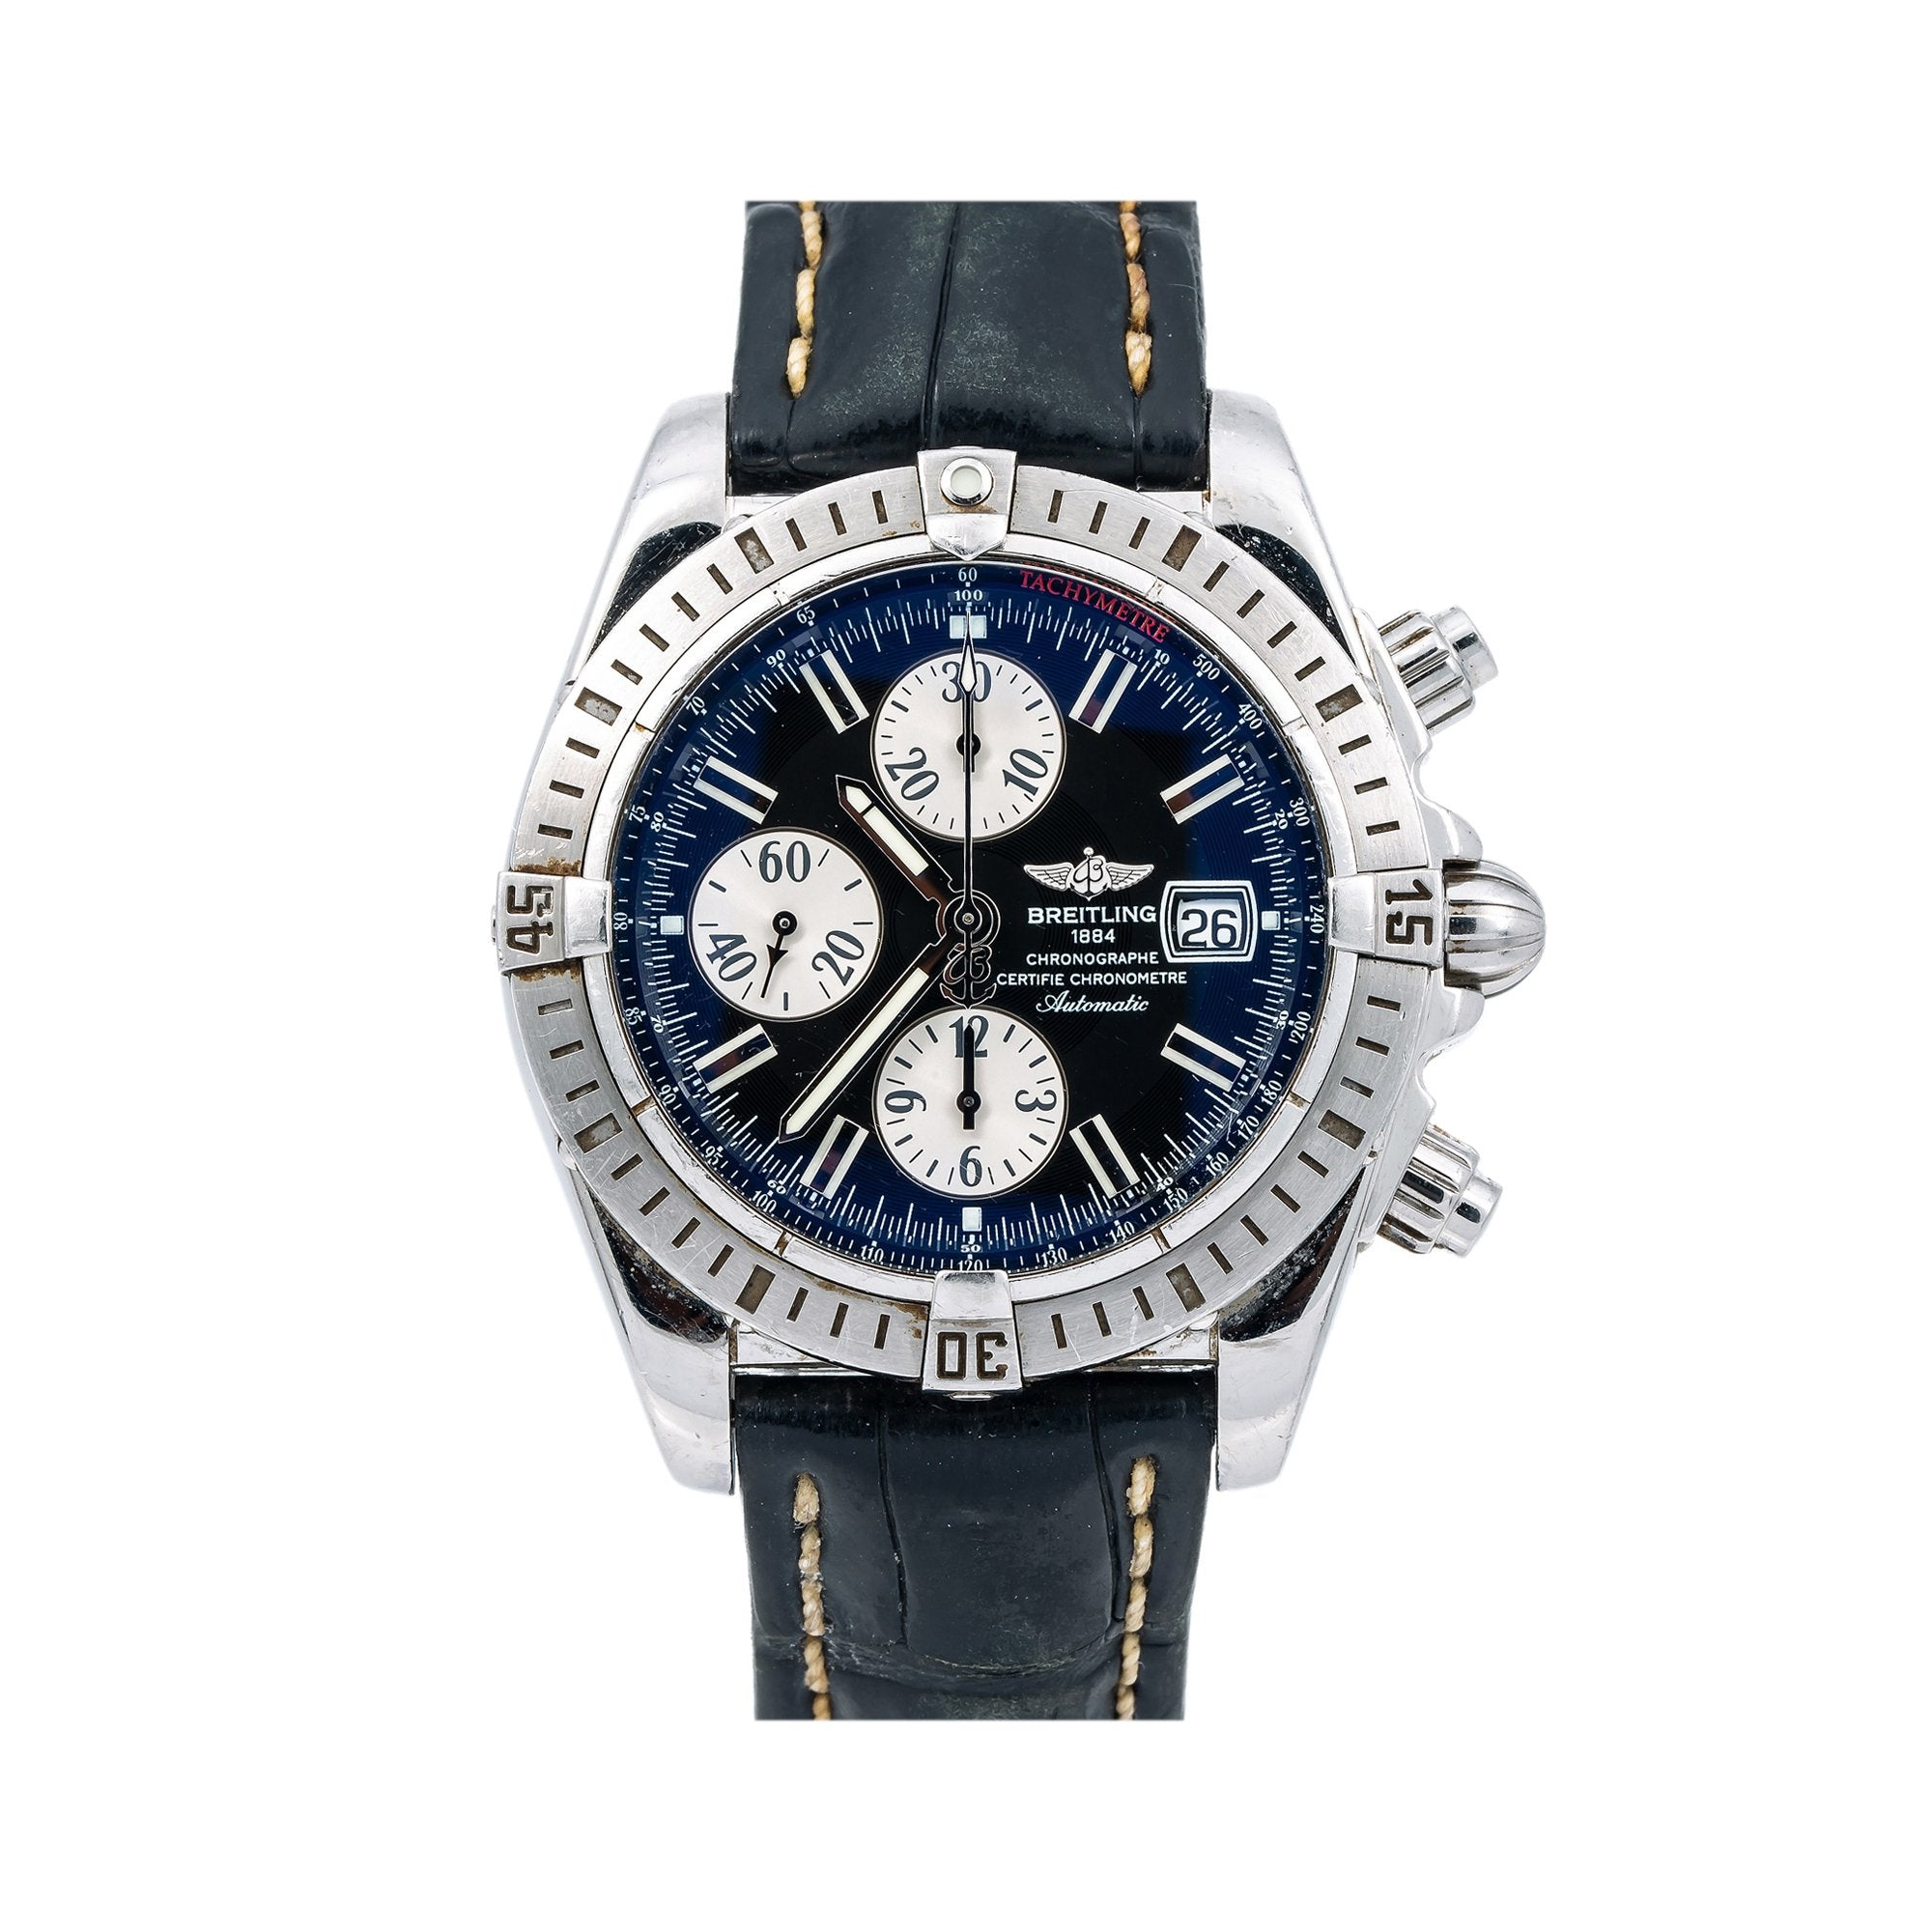 Breitling Chronomat Evolution A13356 44MM Black Dial With Stainless Steel Bracelet